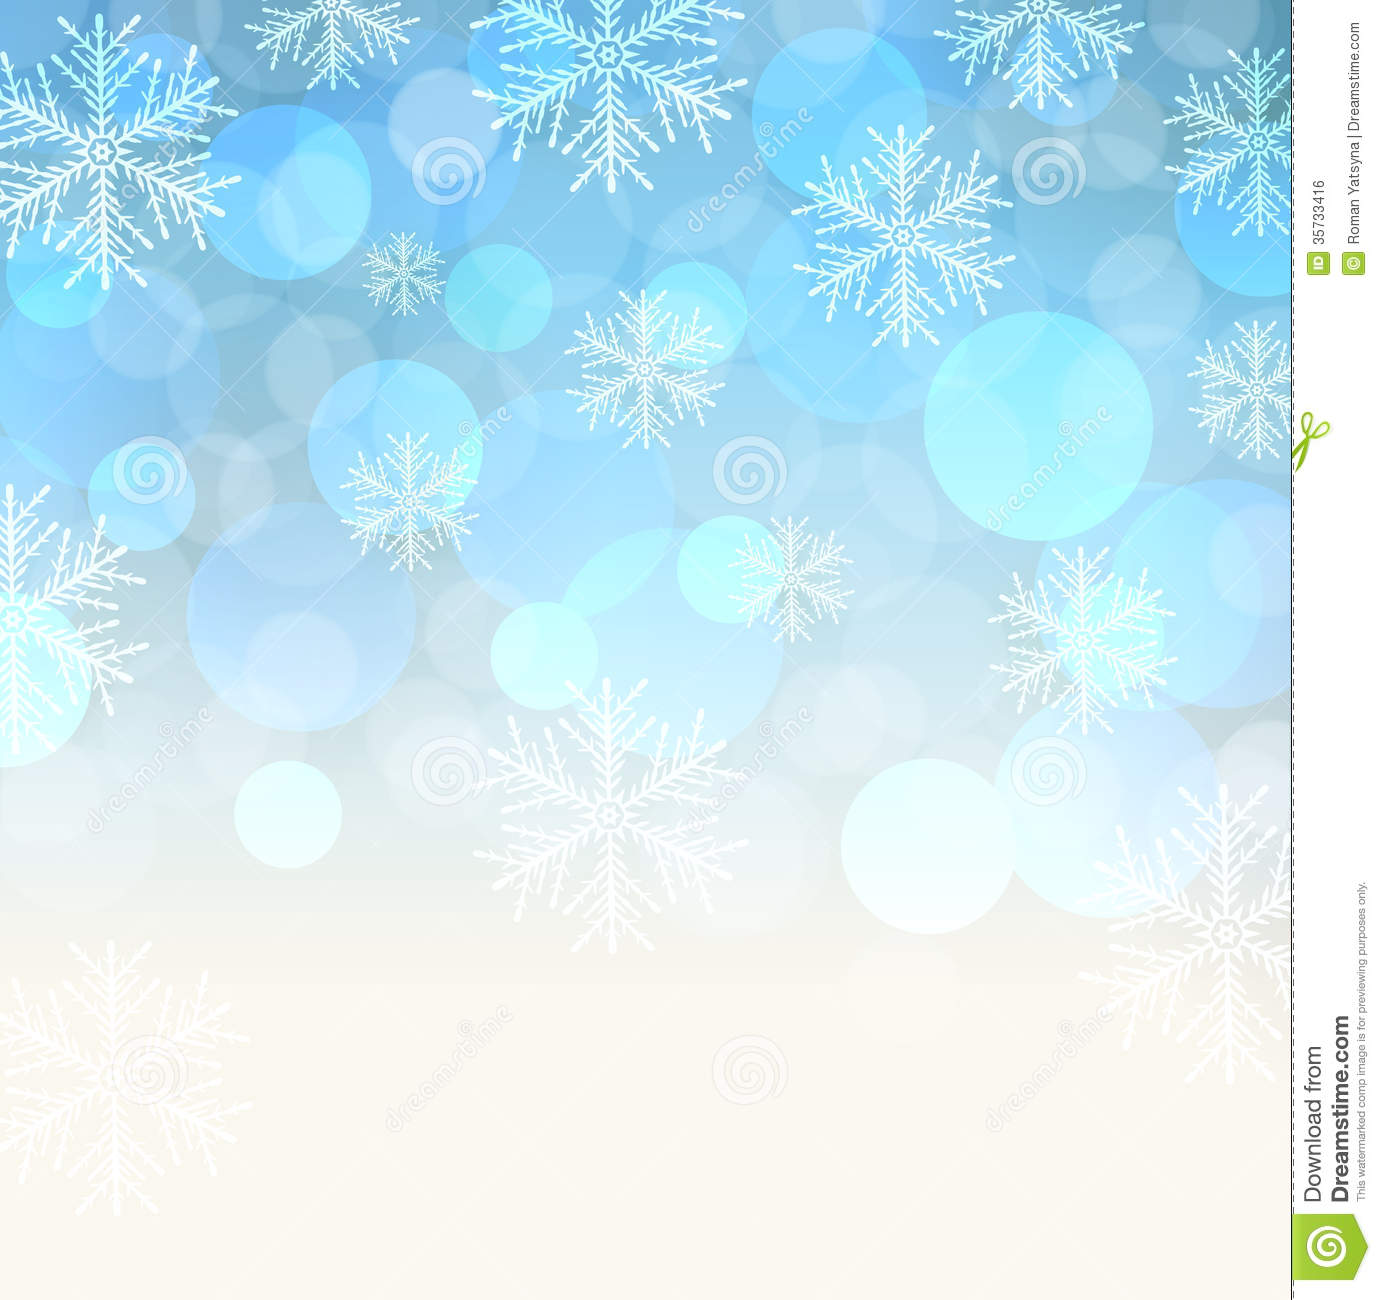 blue snowy background  stock vector  illustration of